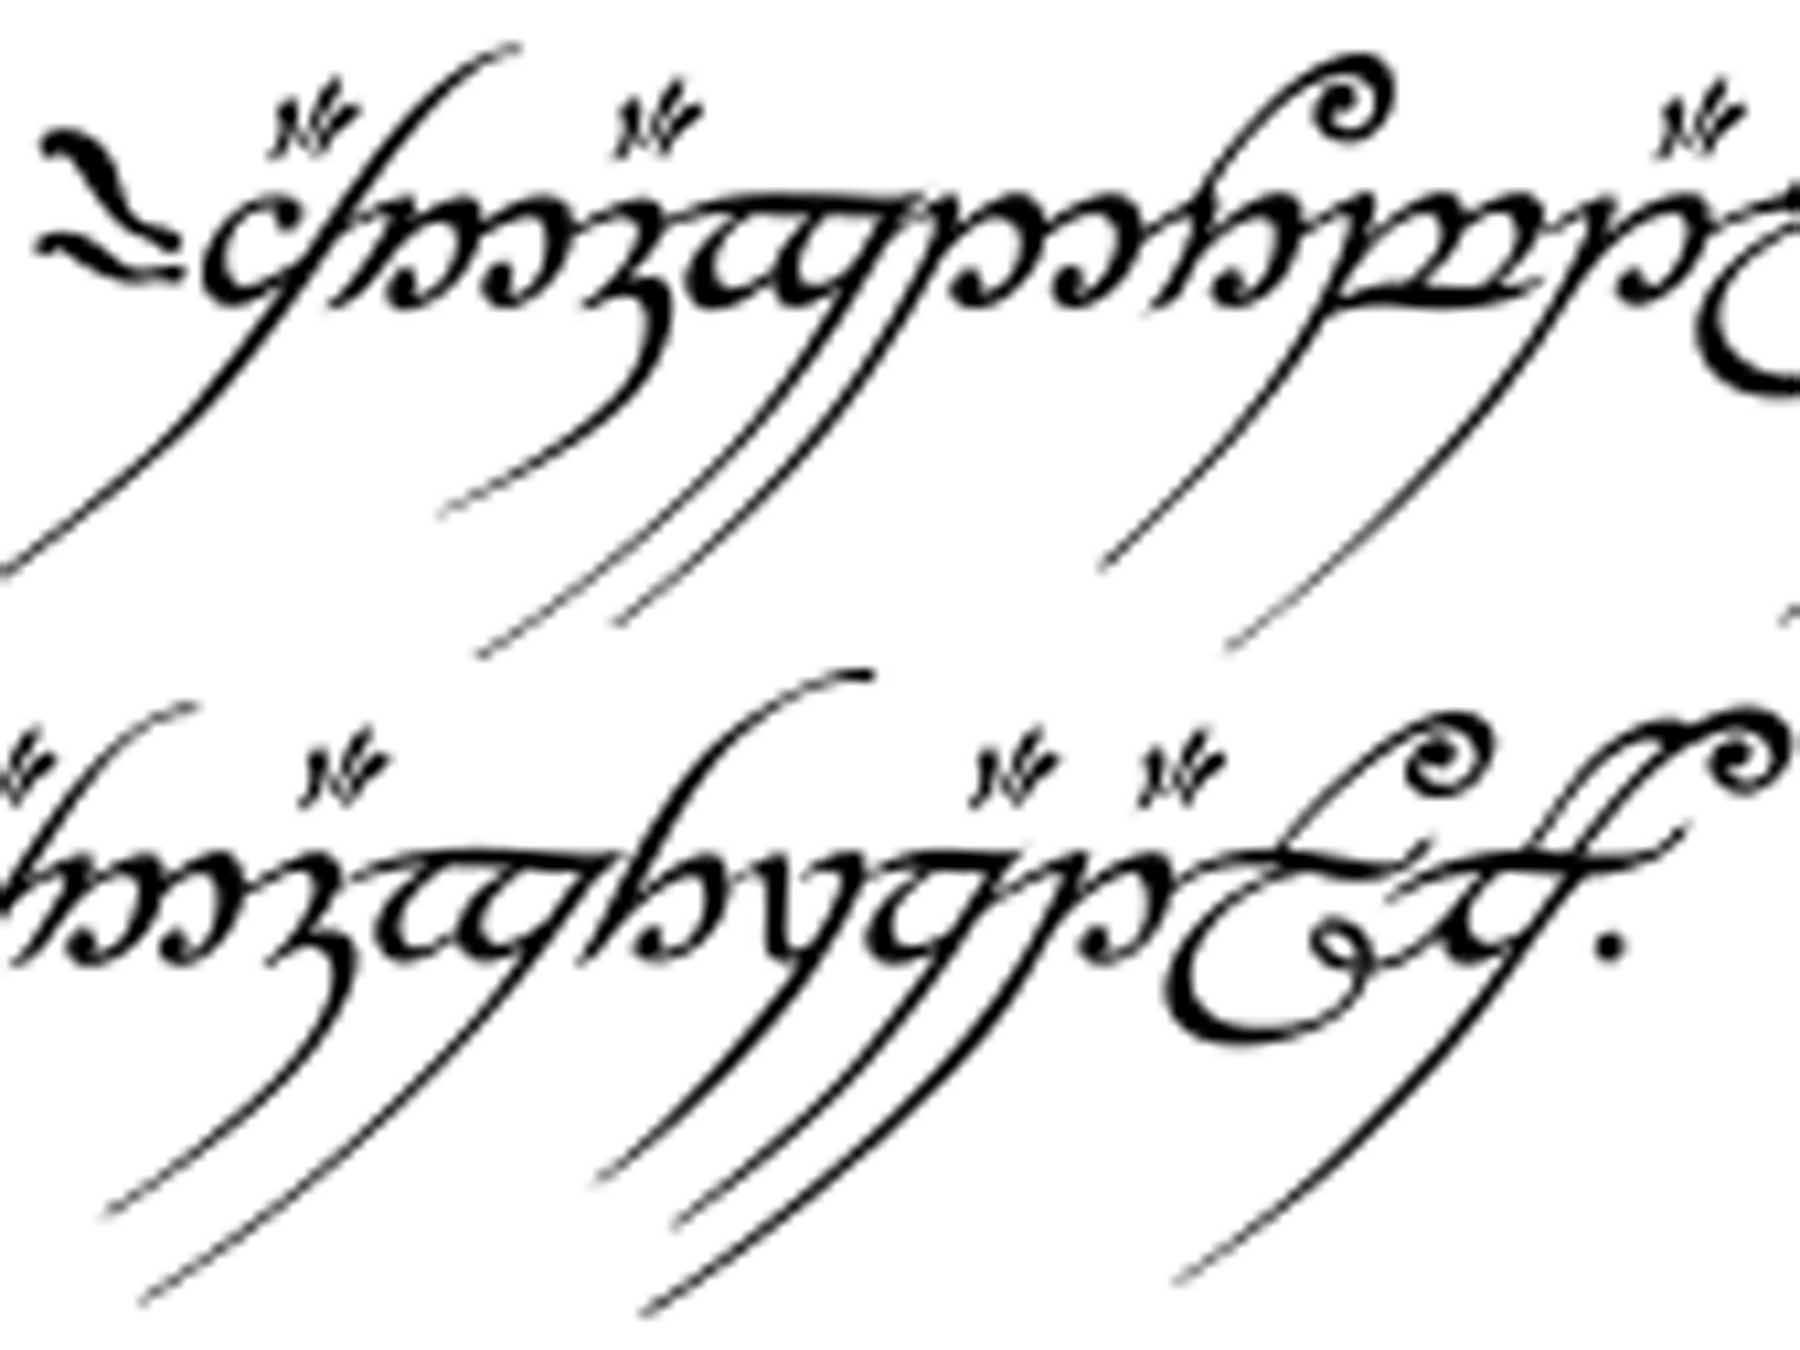 Inscription on the One Ring